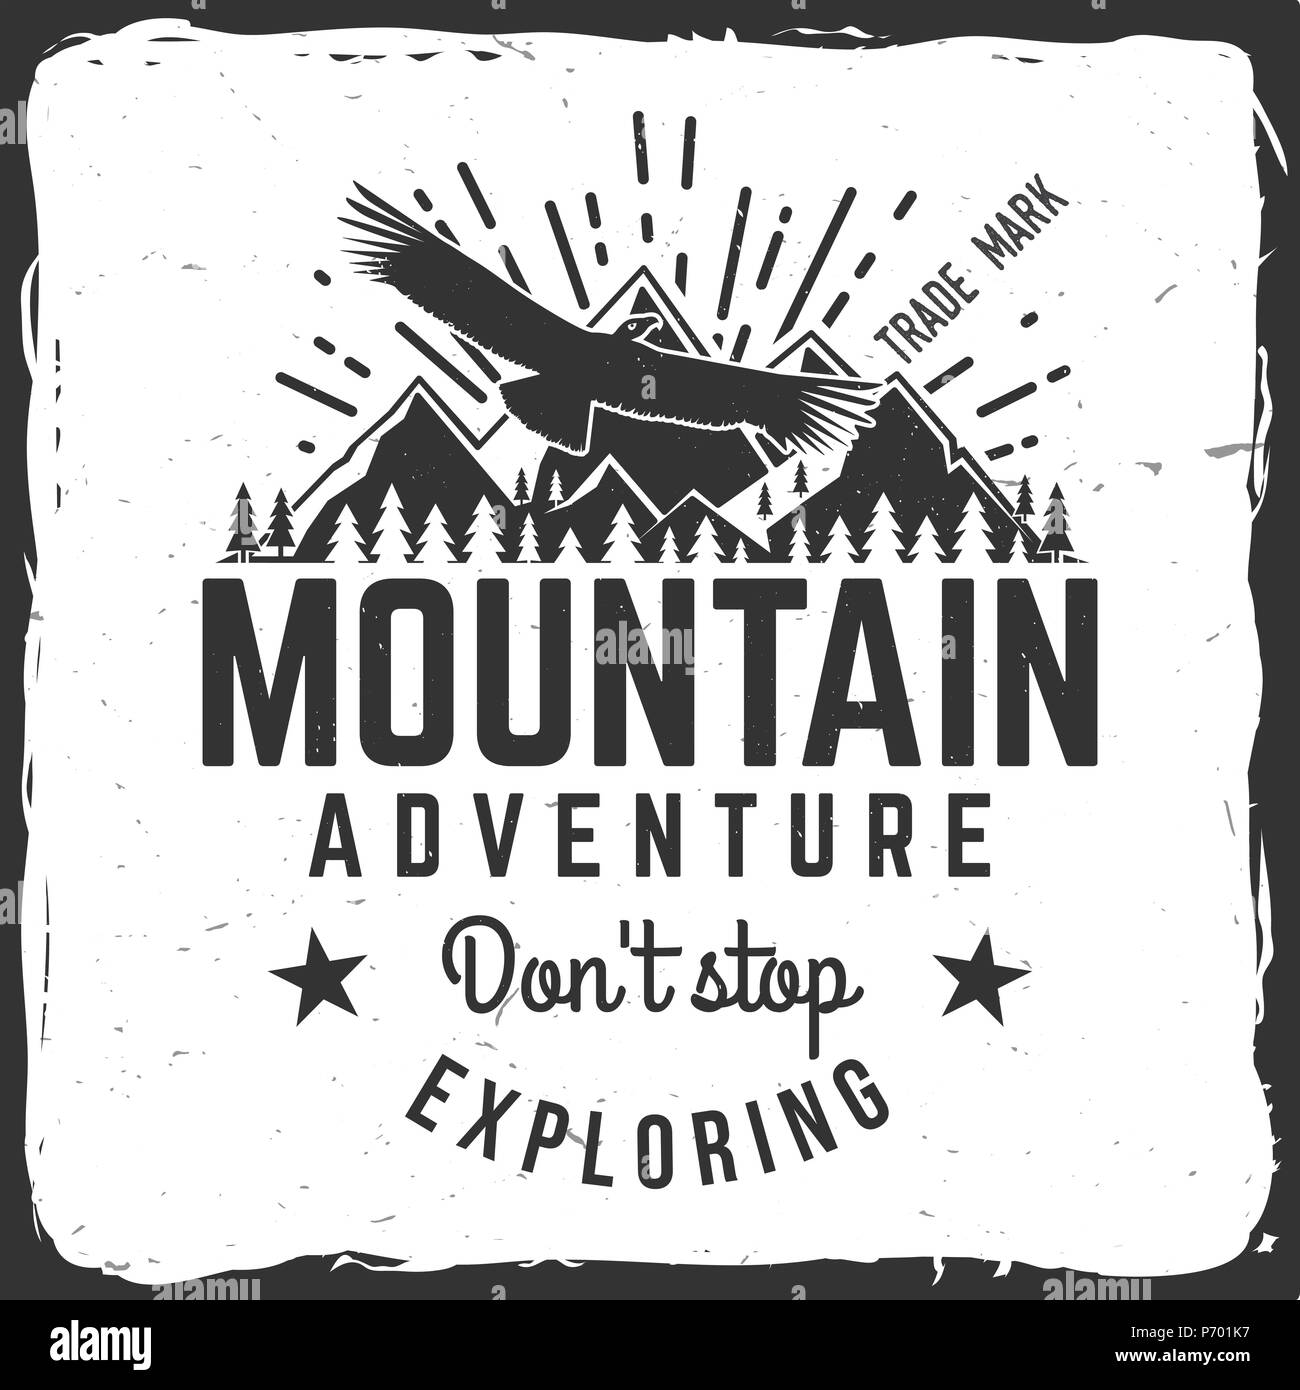 Don t stop exploring. Mountains related typographic quote. Vector illustration. Concept for shirt or logo, print, stamp. - Stock Vector